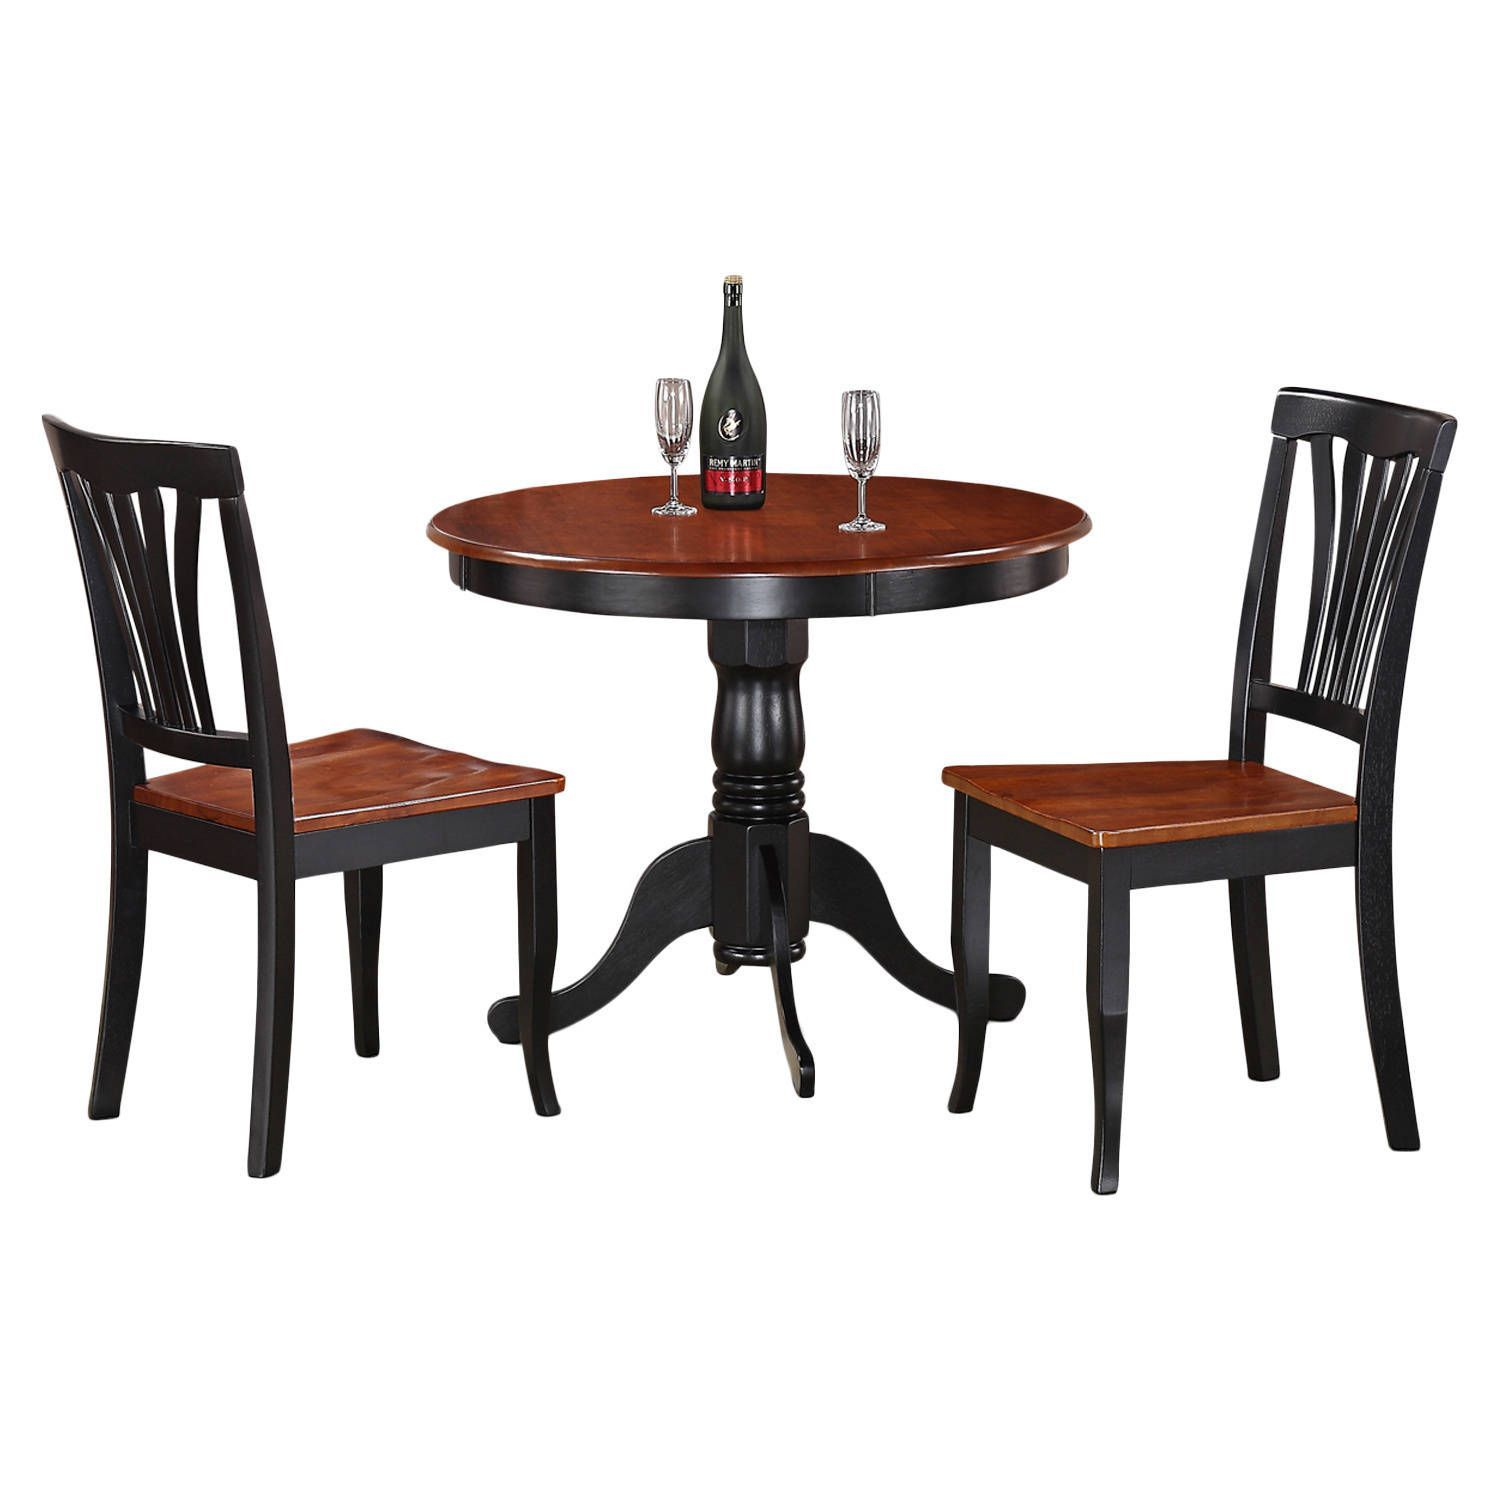 3 Piece Kitchen Nook Dining Set Small Kitchen Table And 2 Kitchen Chairs  (Black Finish   Black/Cherry), Size 3 Piece Sets